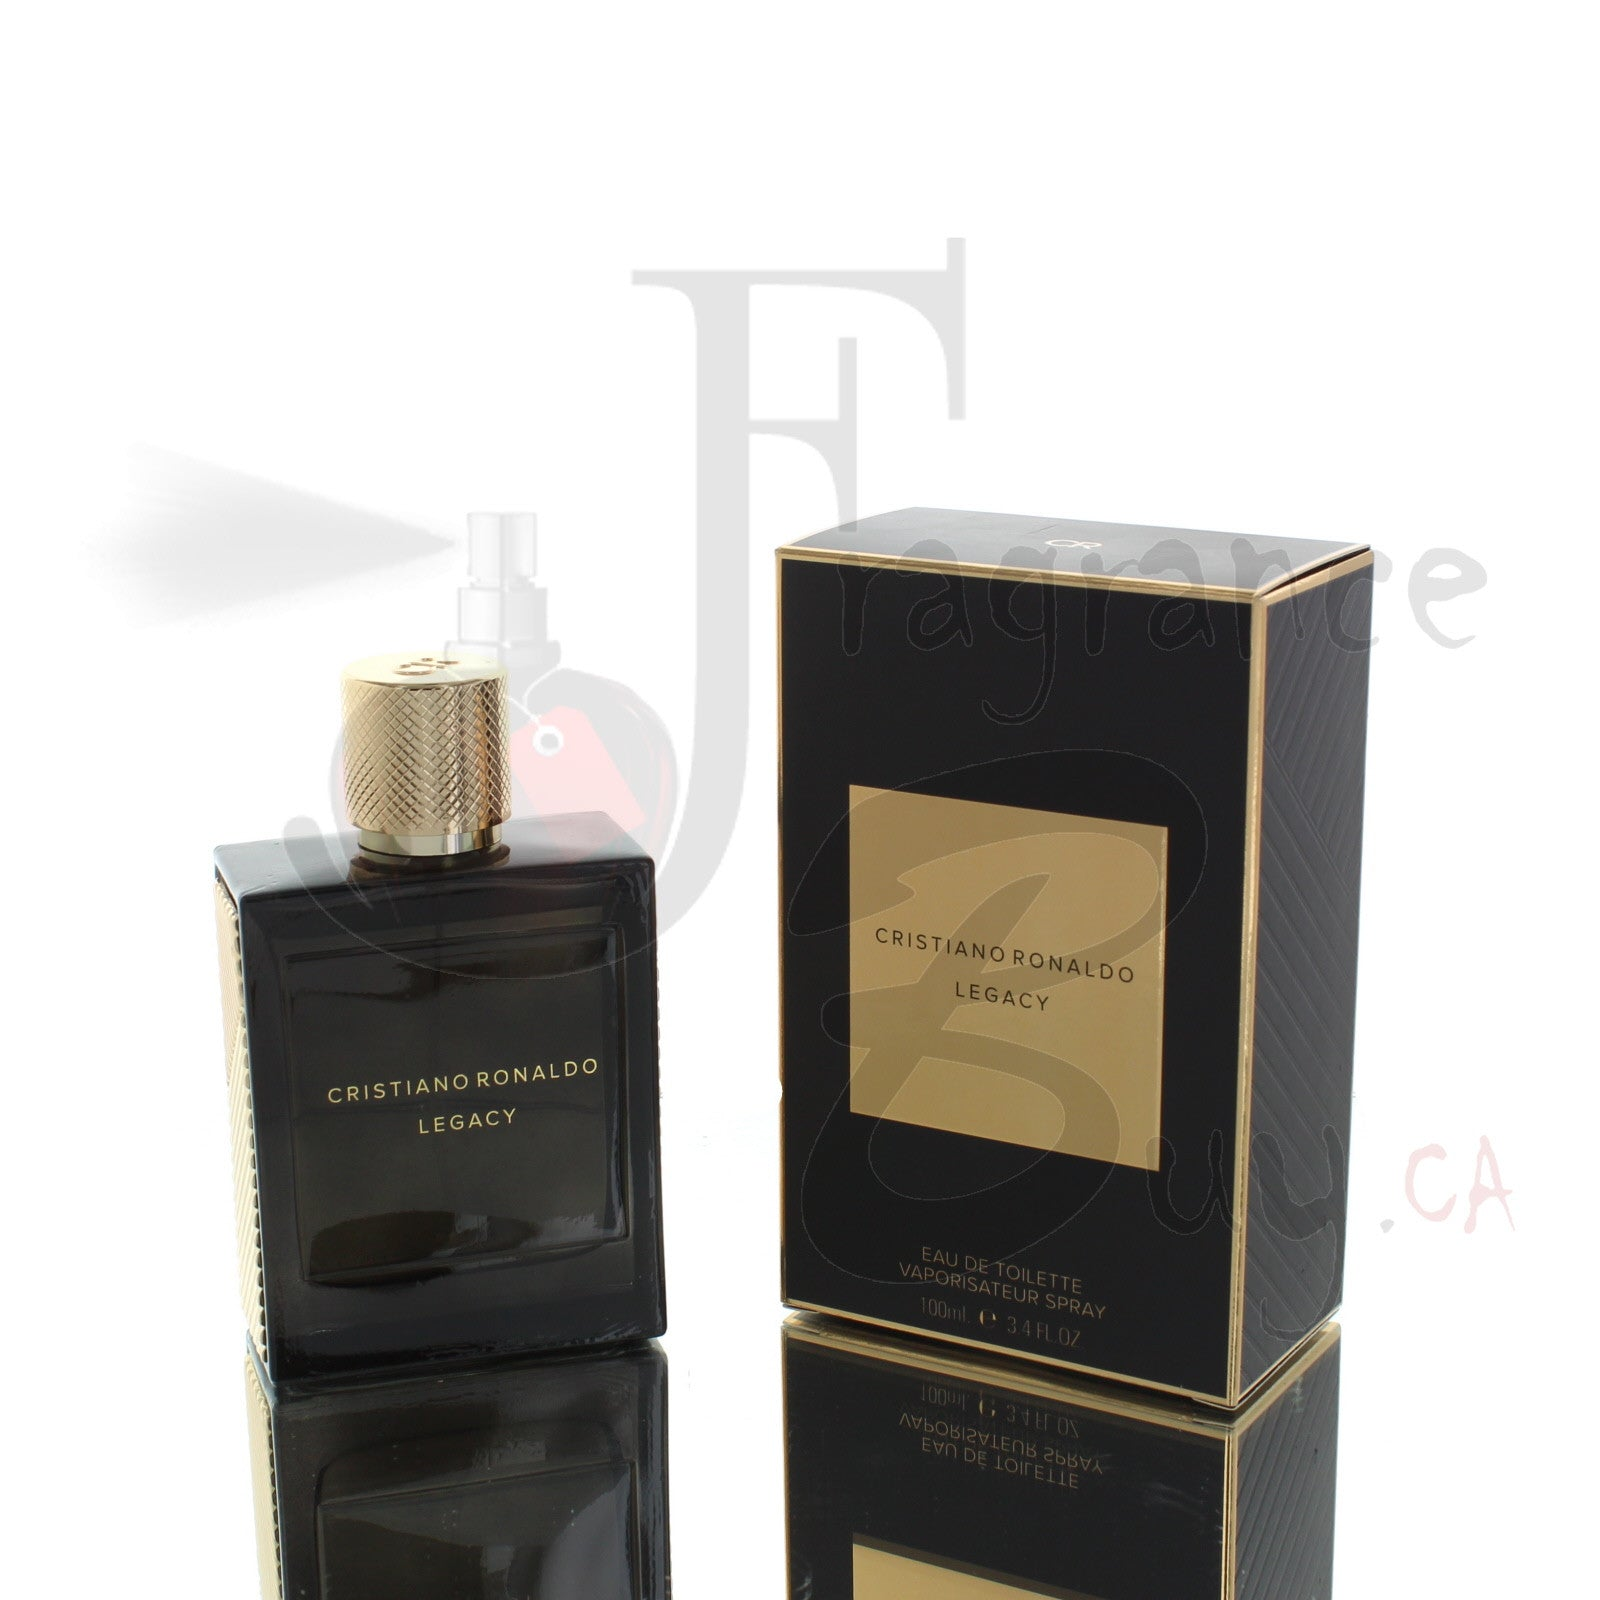 fragrancebuy cristiano ronaldo legacy homme man cologne. Black Bedroom Furniture Sets. Home Design Ideas